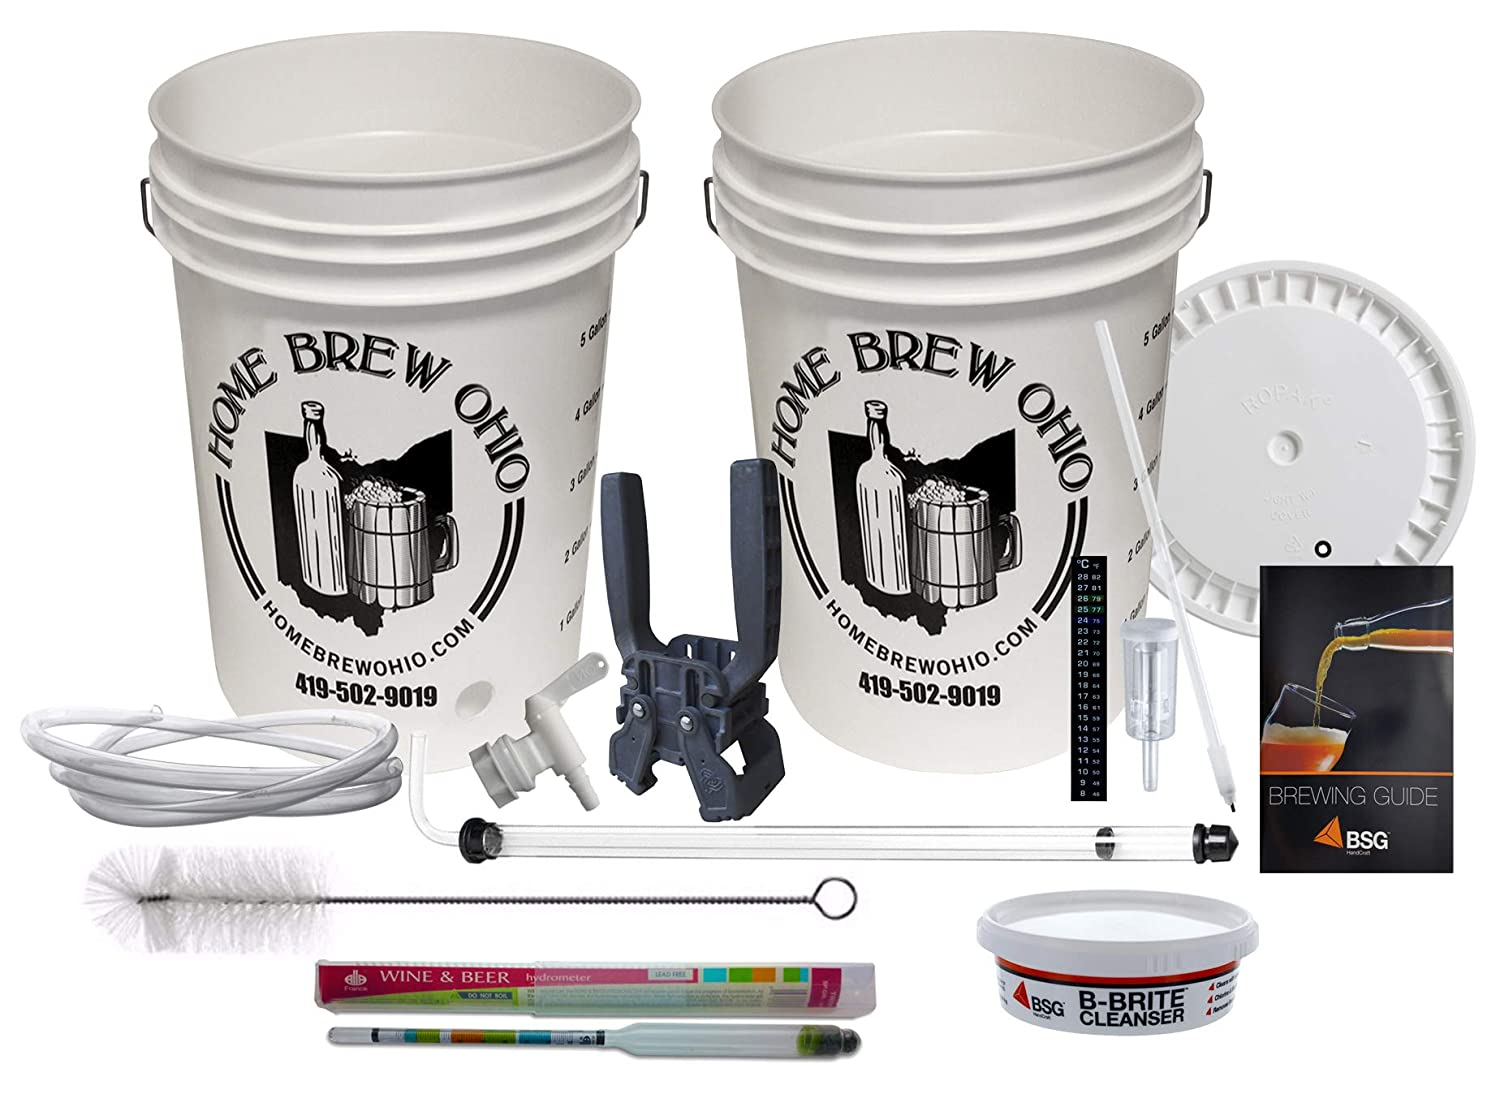 Home Brew Ohio Maestro Homebrew Beer Equipment Kit with Auto Siphon WB-K8FJ-5FEA